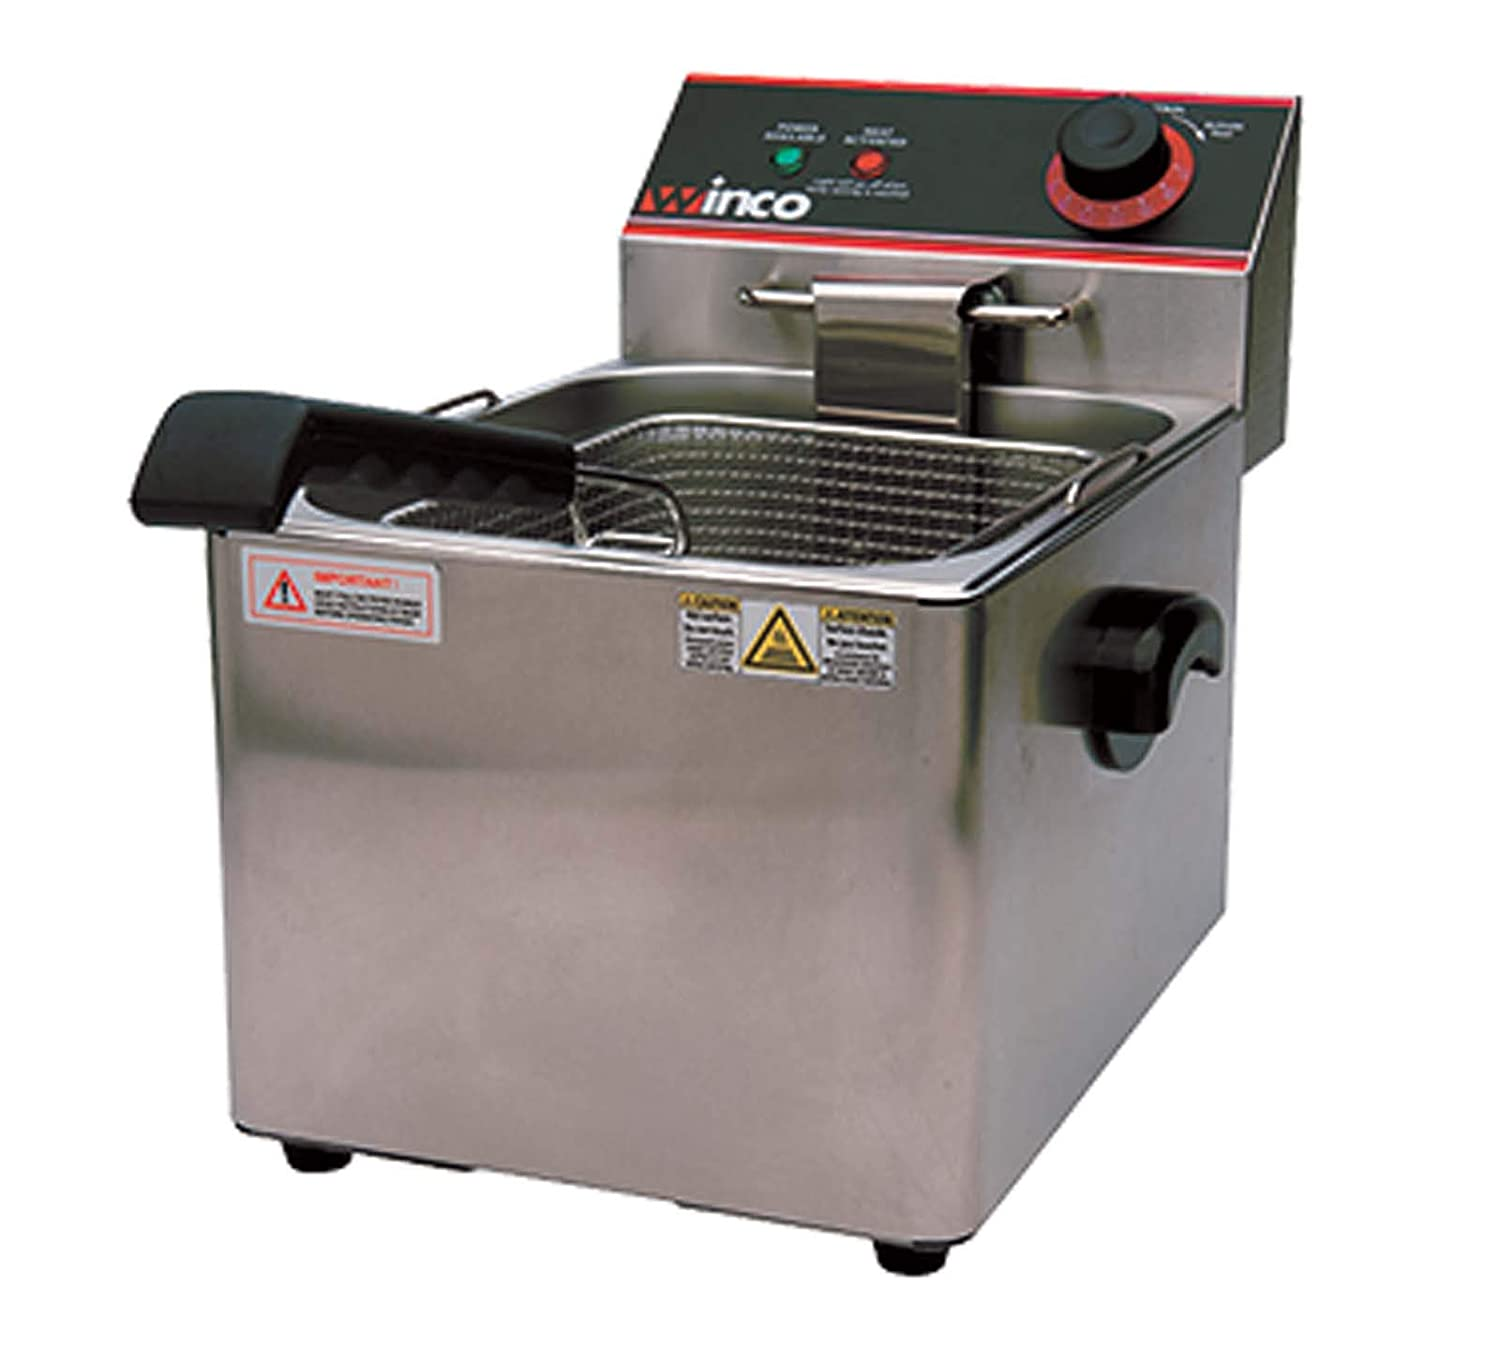 Winco EFS-16 Deep Fryer, electric, countertop single well